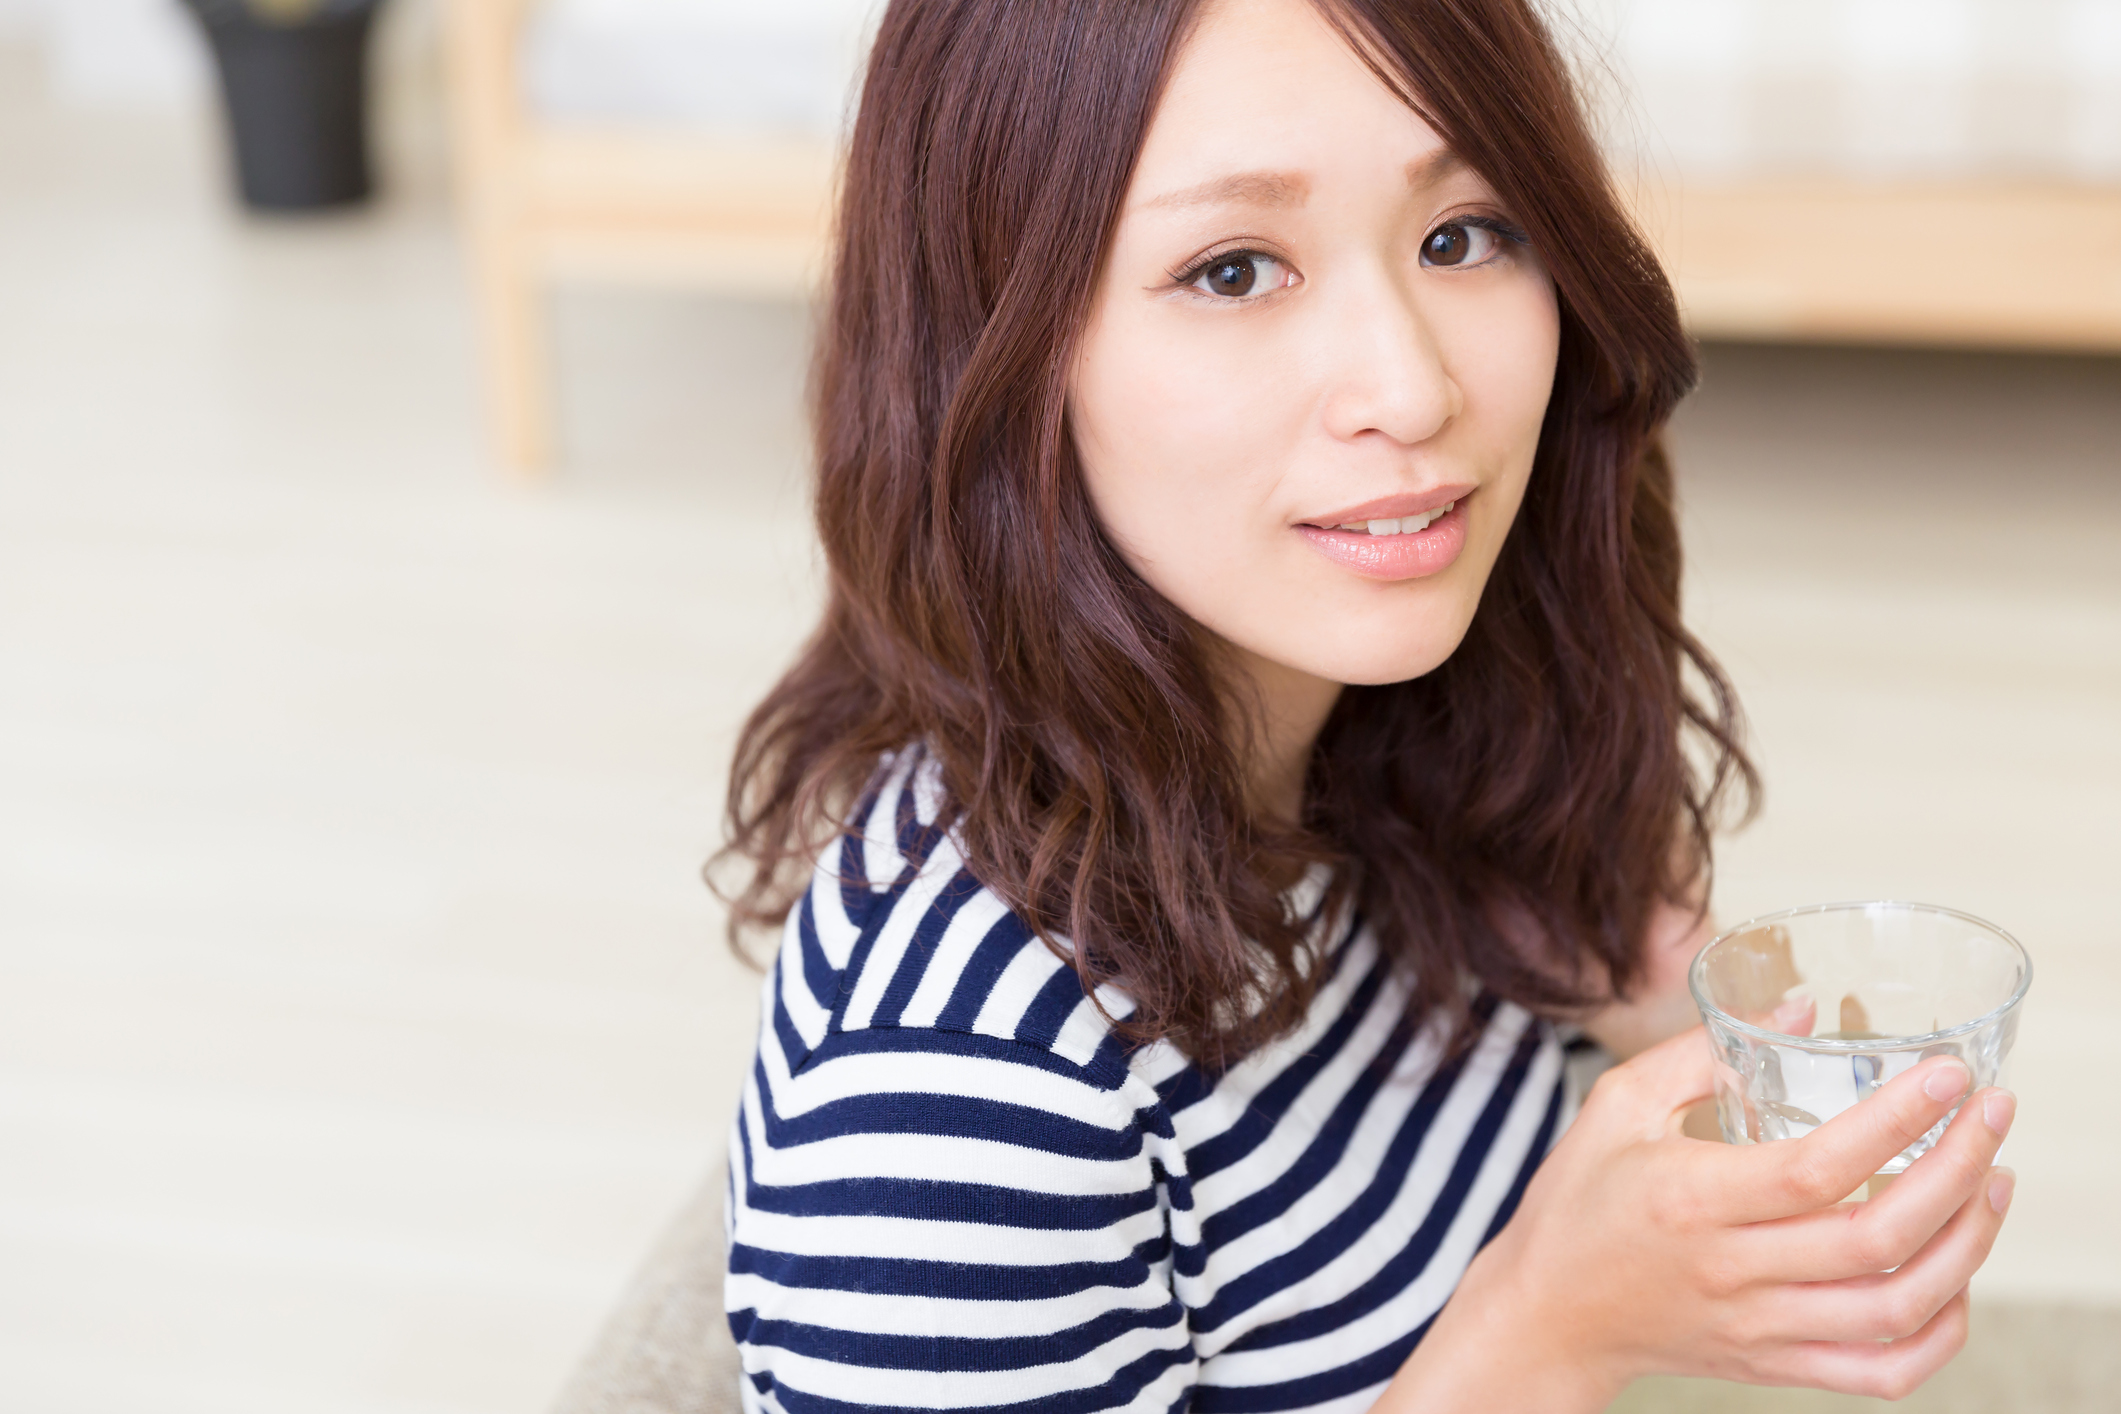 Japanese woman having a glass of water